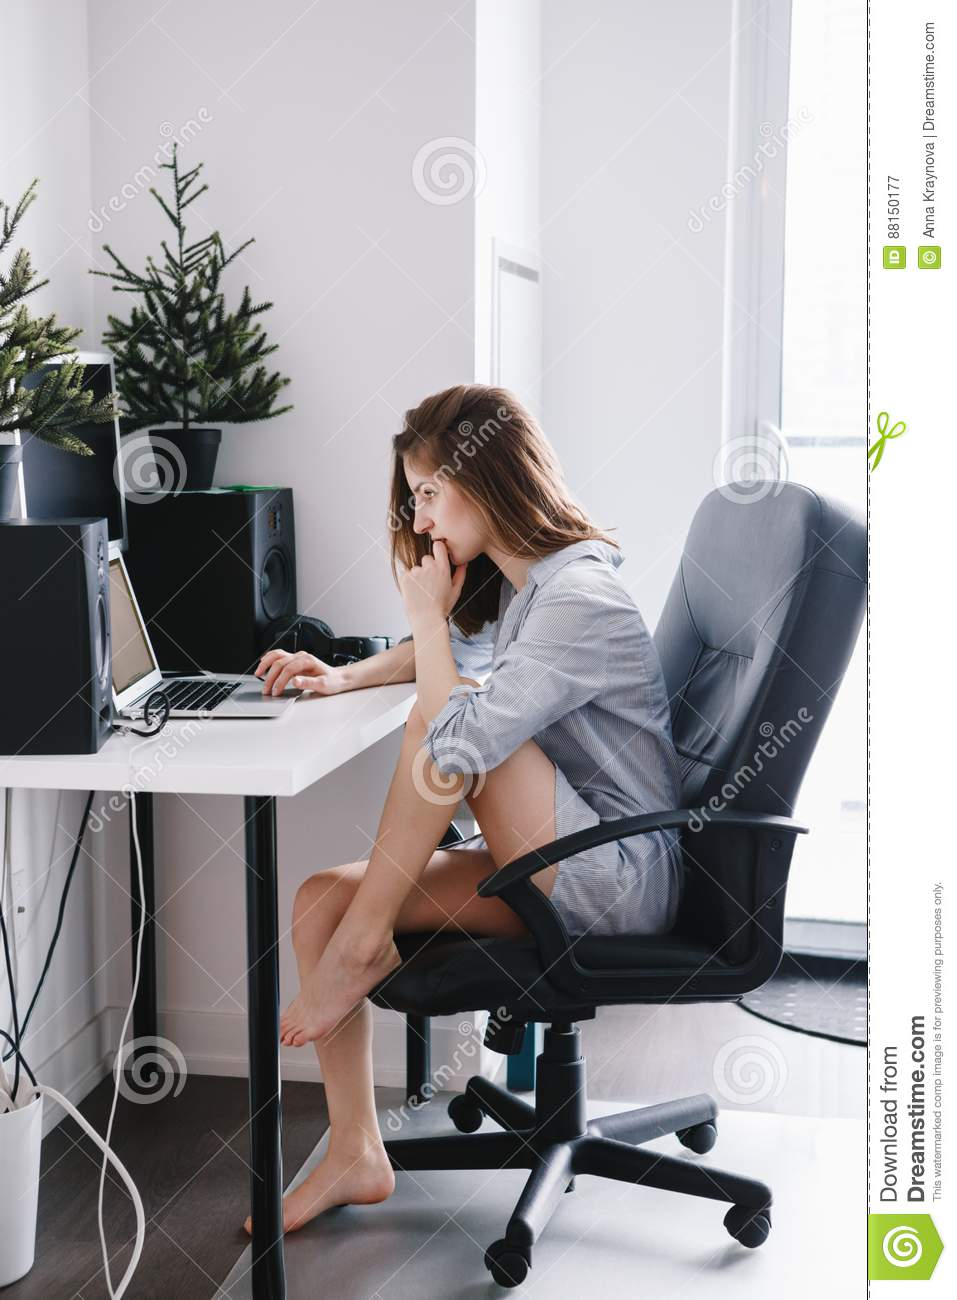 Caucasian Girl Woman Student In Pajamas Shirt Working On Laptop Computer Stock Image Image Of Communication Home 88150177